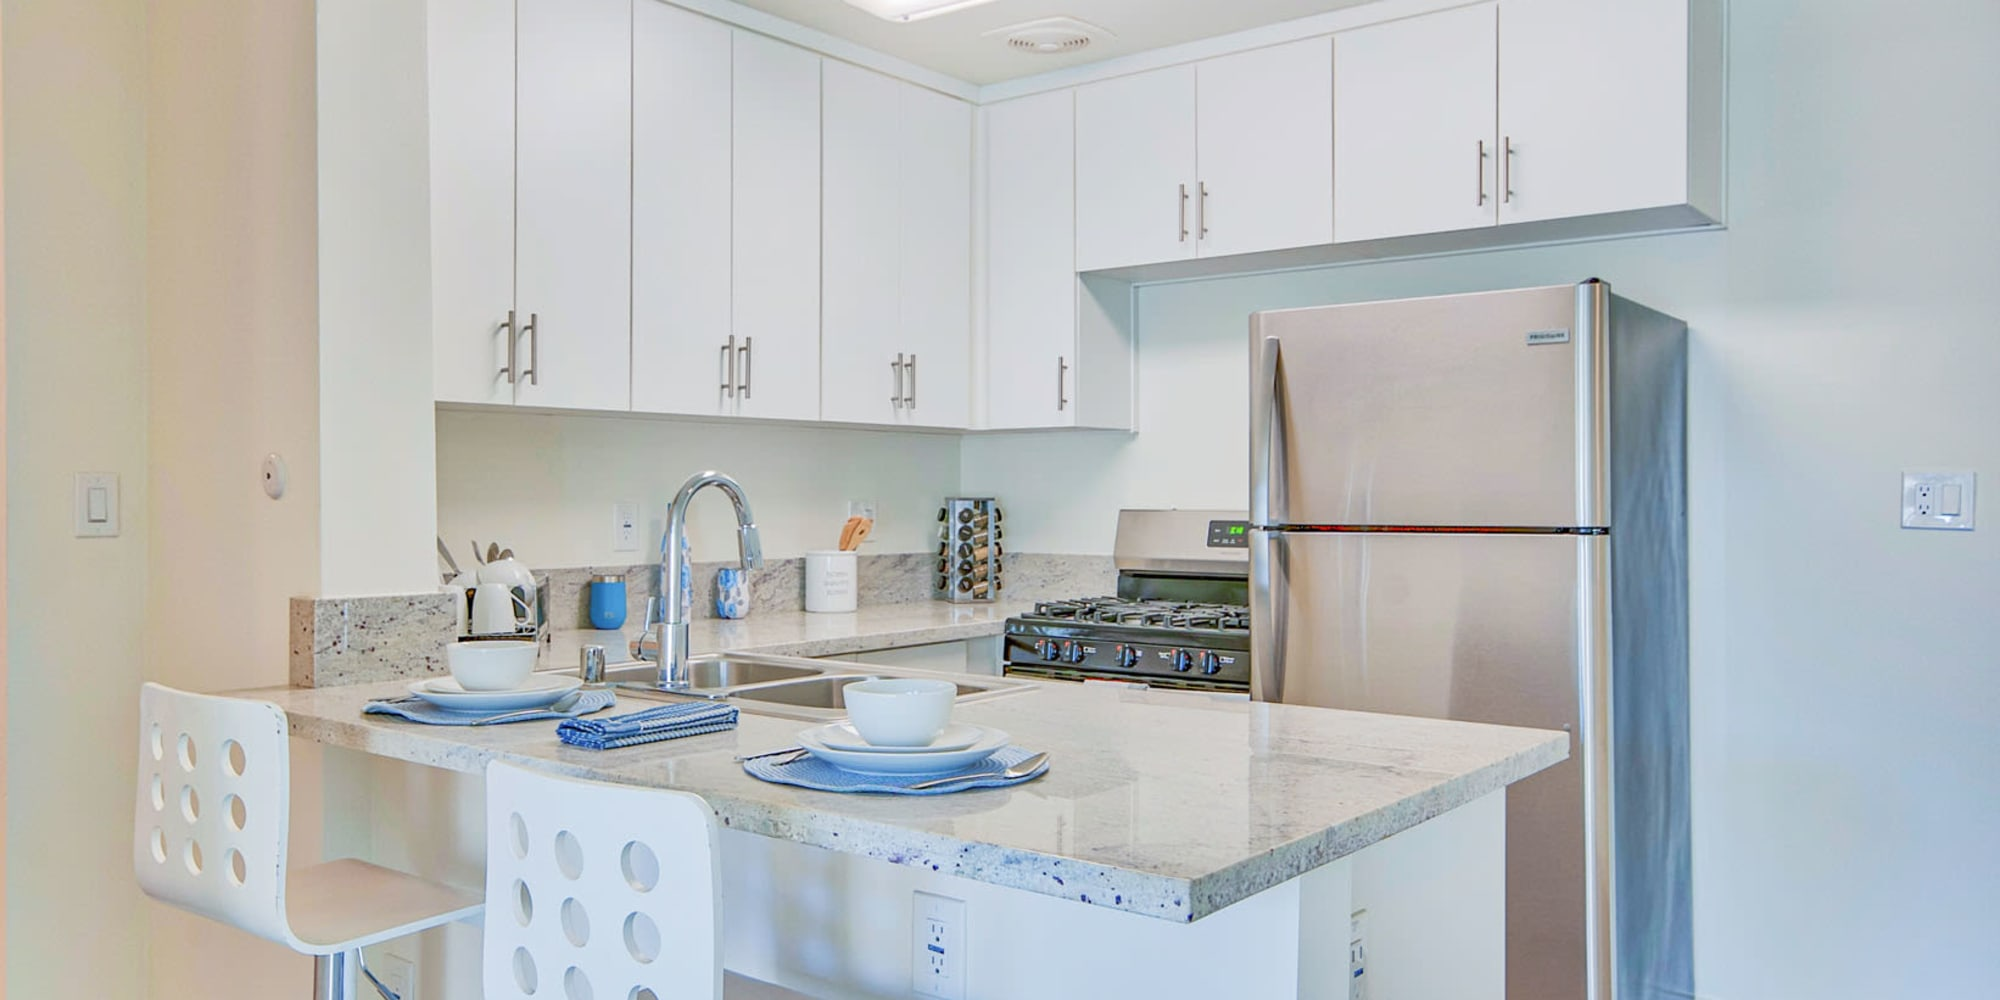 Model apartment's kitchen with stainless-steel appliances and a breakfast bar at Villa Vicente in Los Angeles, California